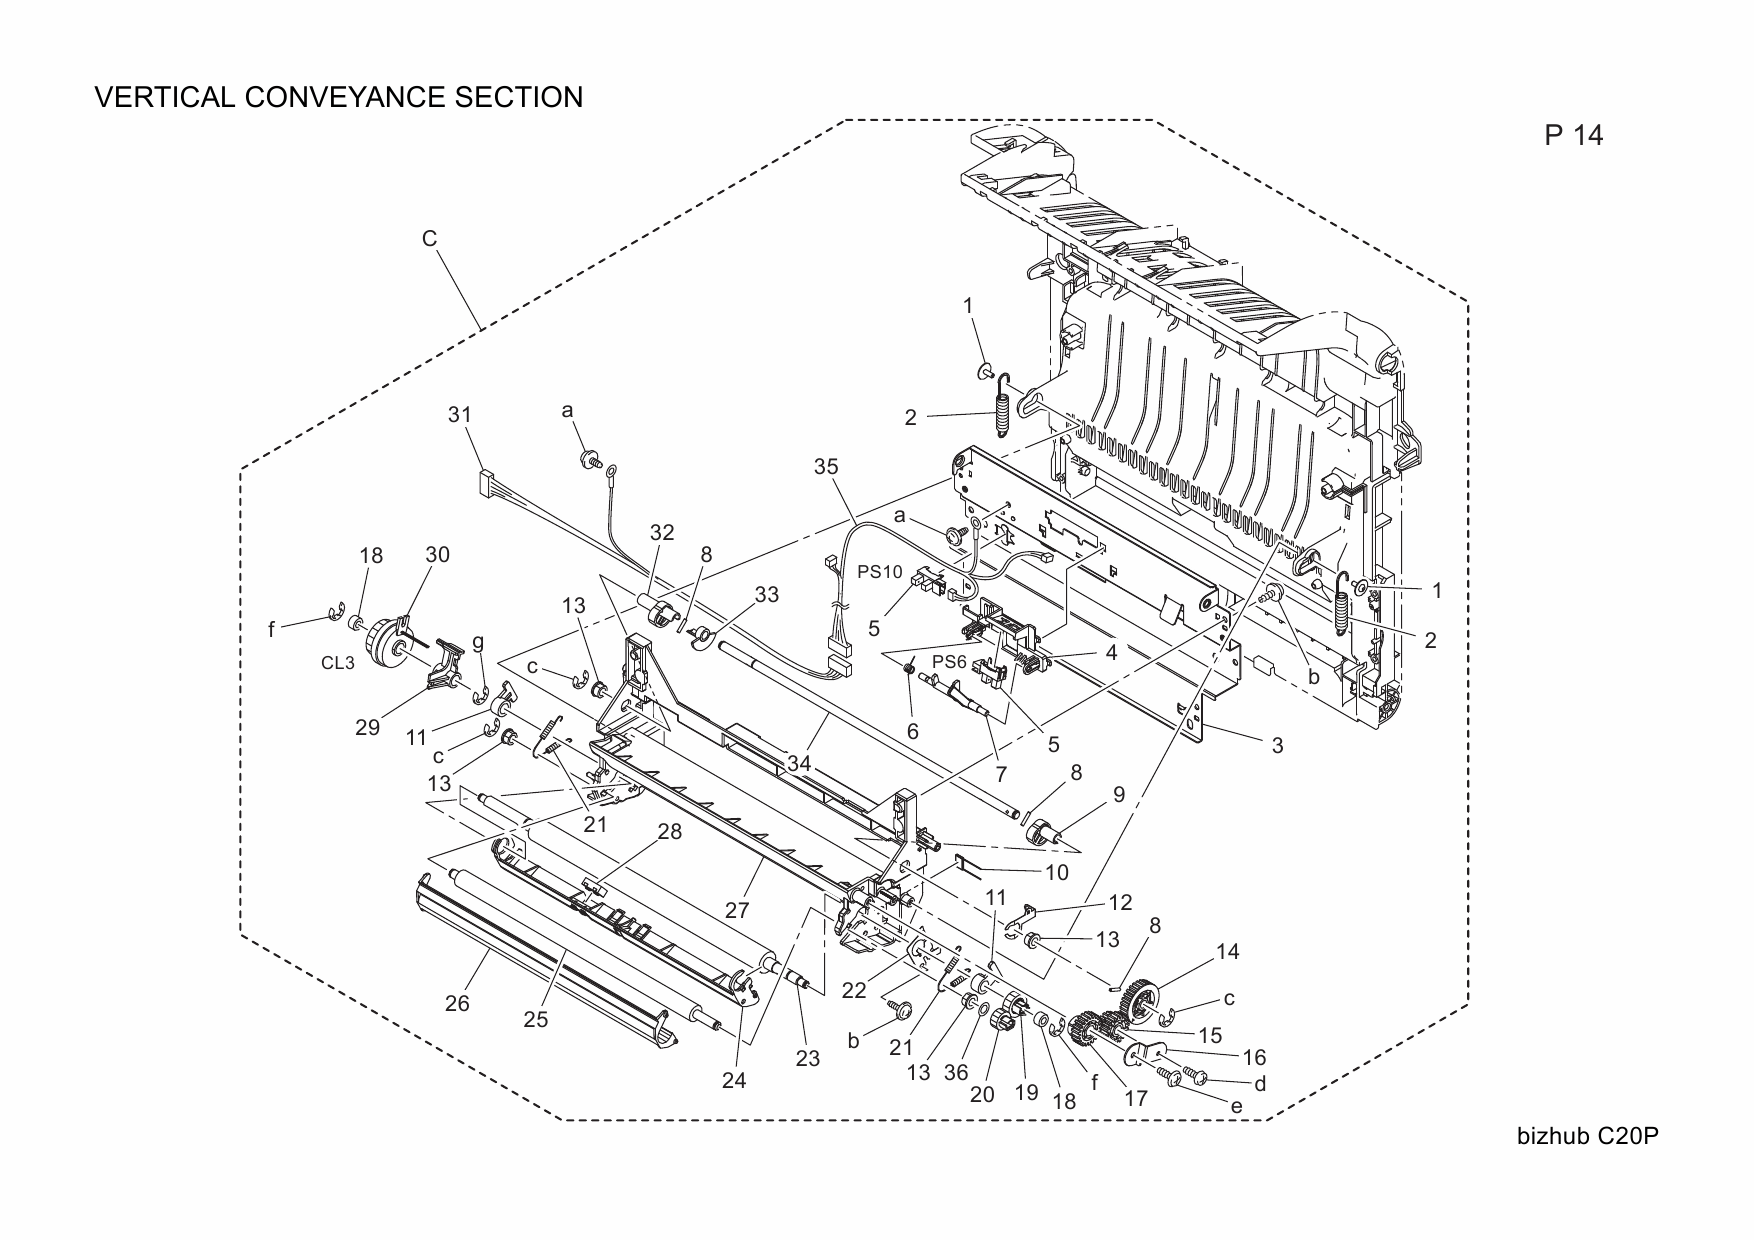 Konica-Minolta bizhub C20P Parts Manual